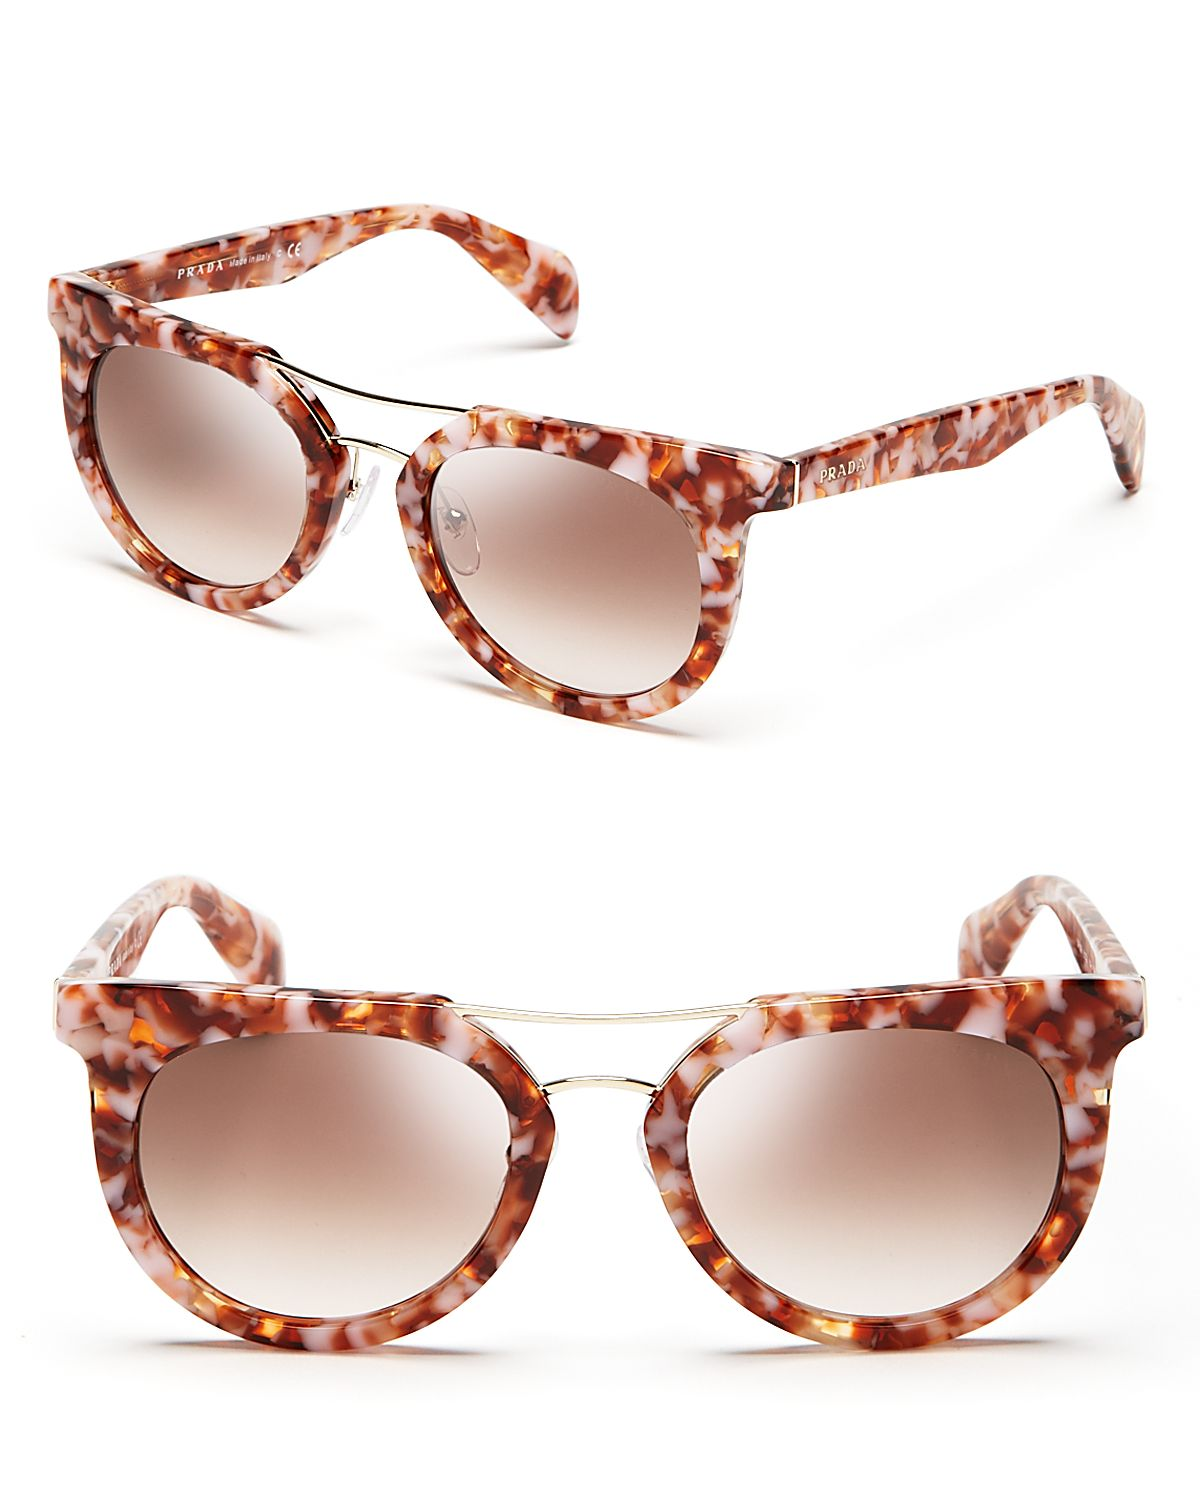 Prada Rounded Cat Eye Sunglasses Havana